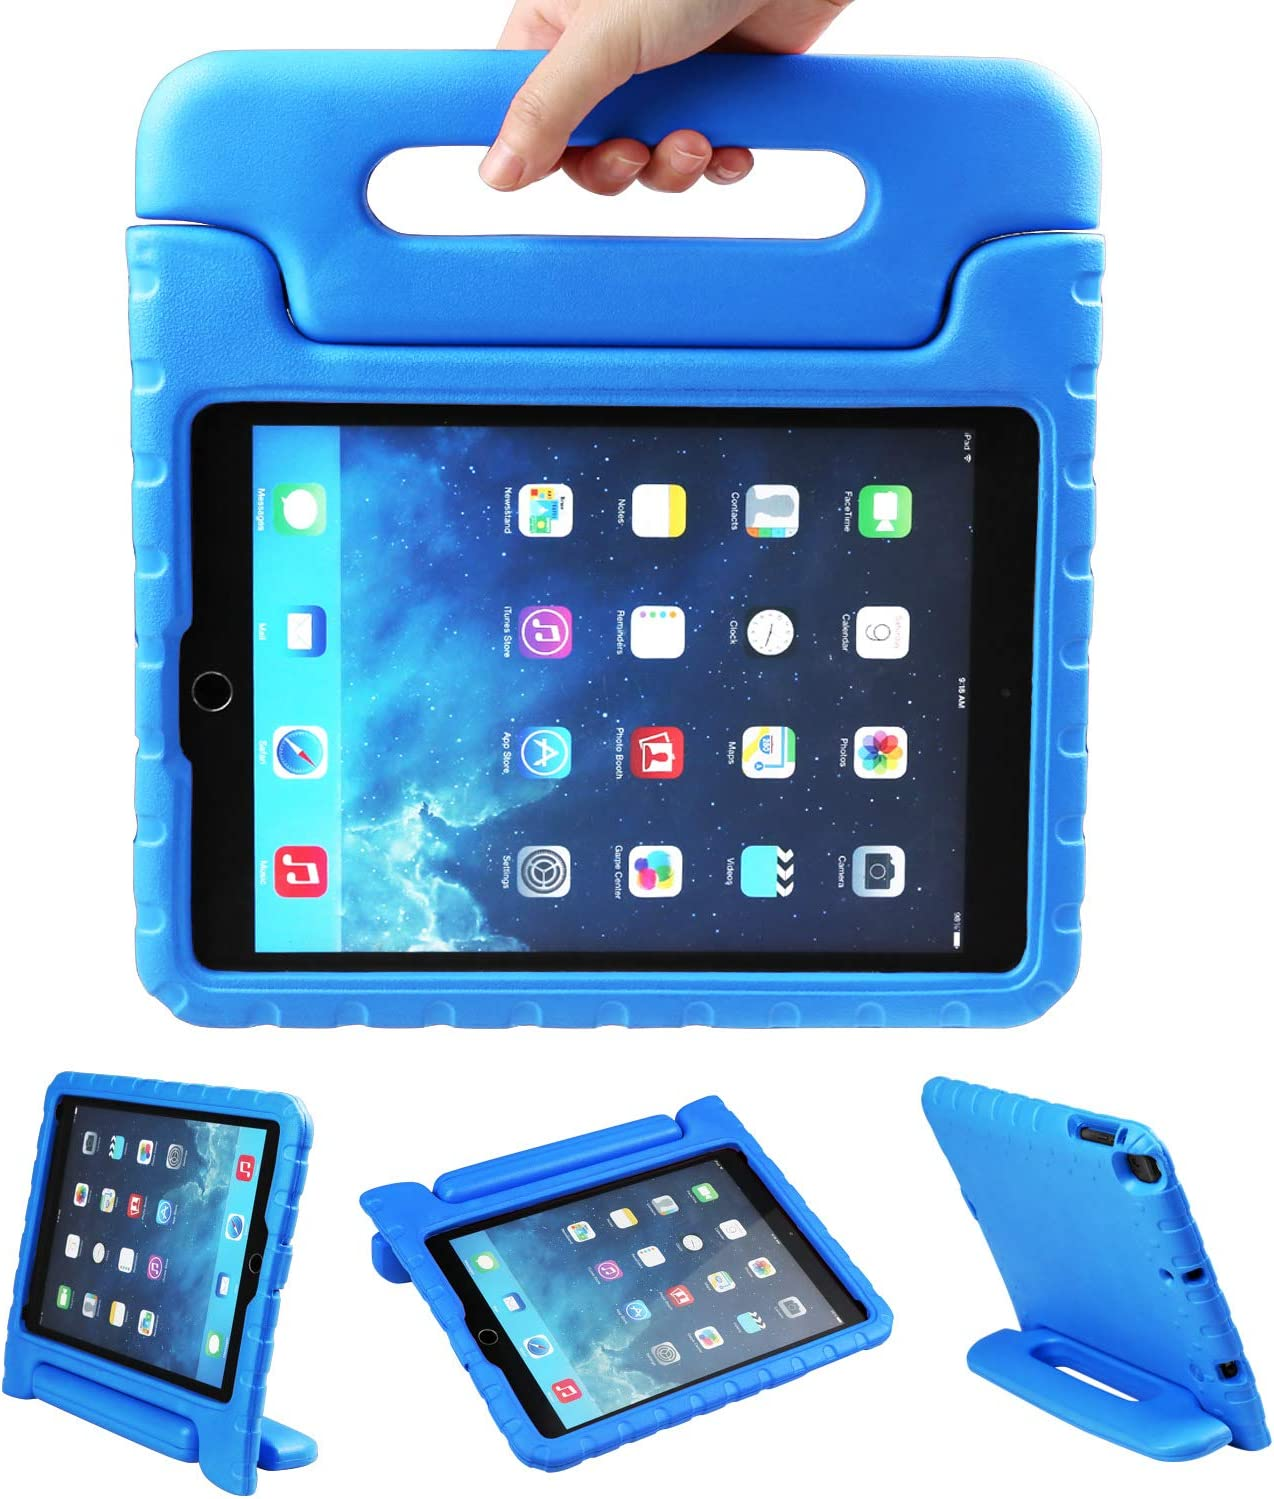 NEWSTYLE Apple iPad Air 2 Case Shockproof Case Light Weight Kids Case